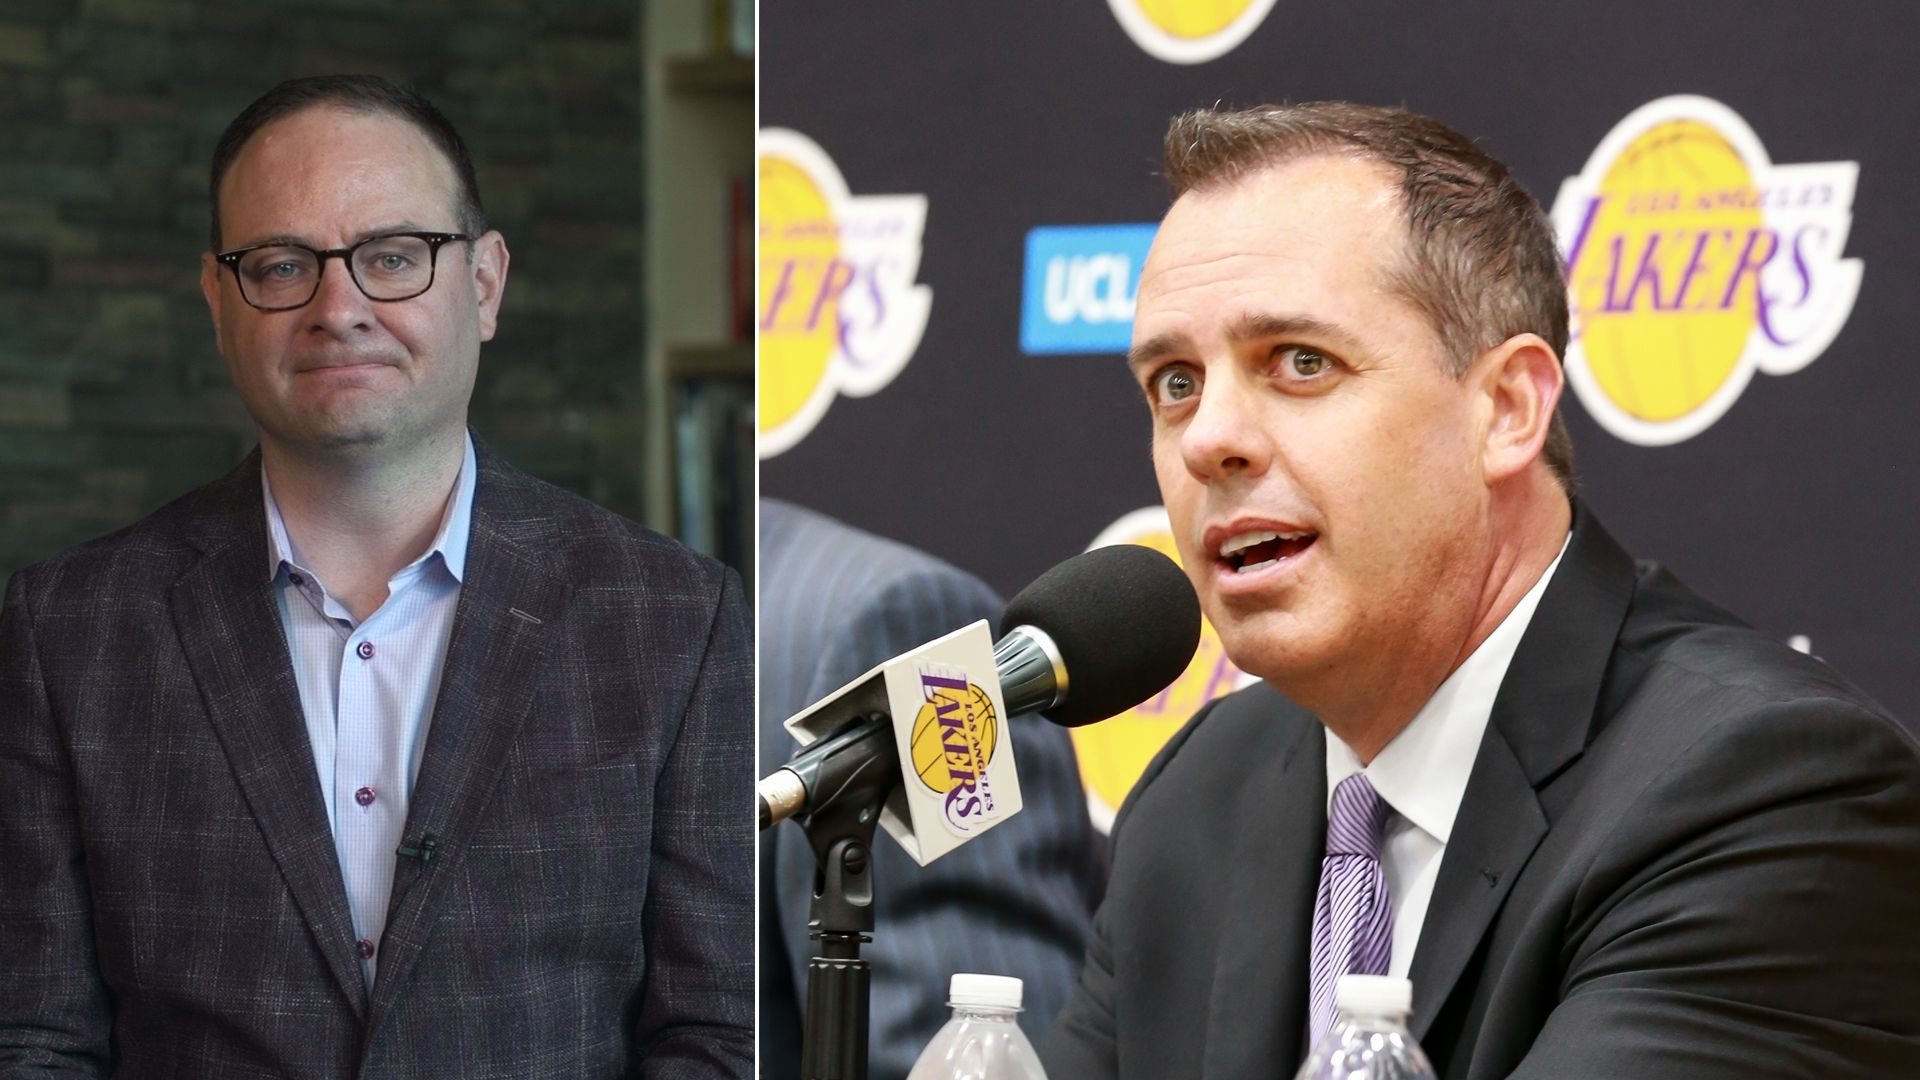 Woj: Frank Vogel has difficult task ahead in L.A.